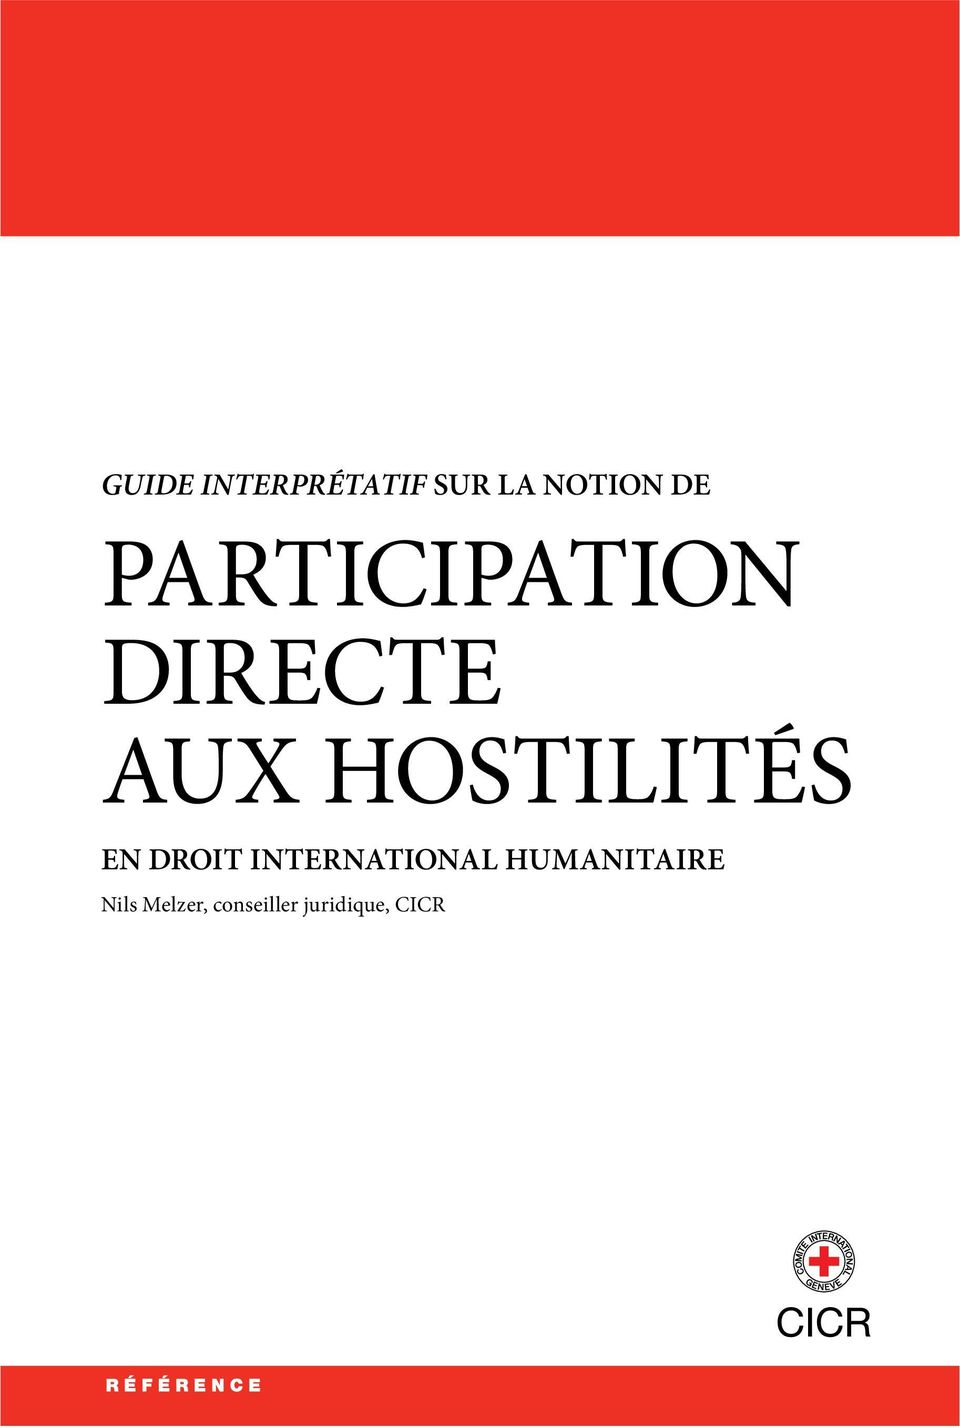 EN DROIT INTERNATIONAL HUMANITAIRE